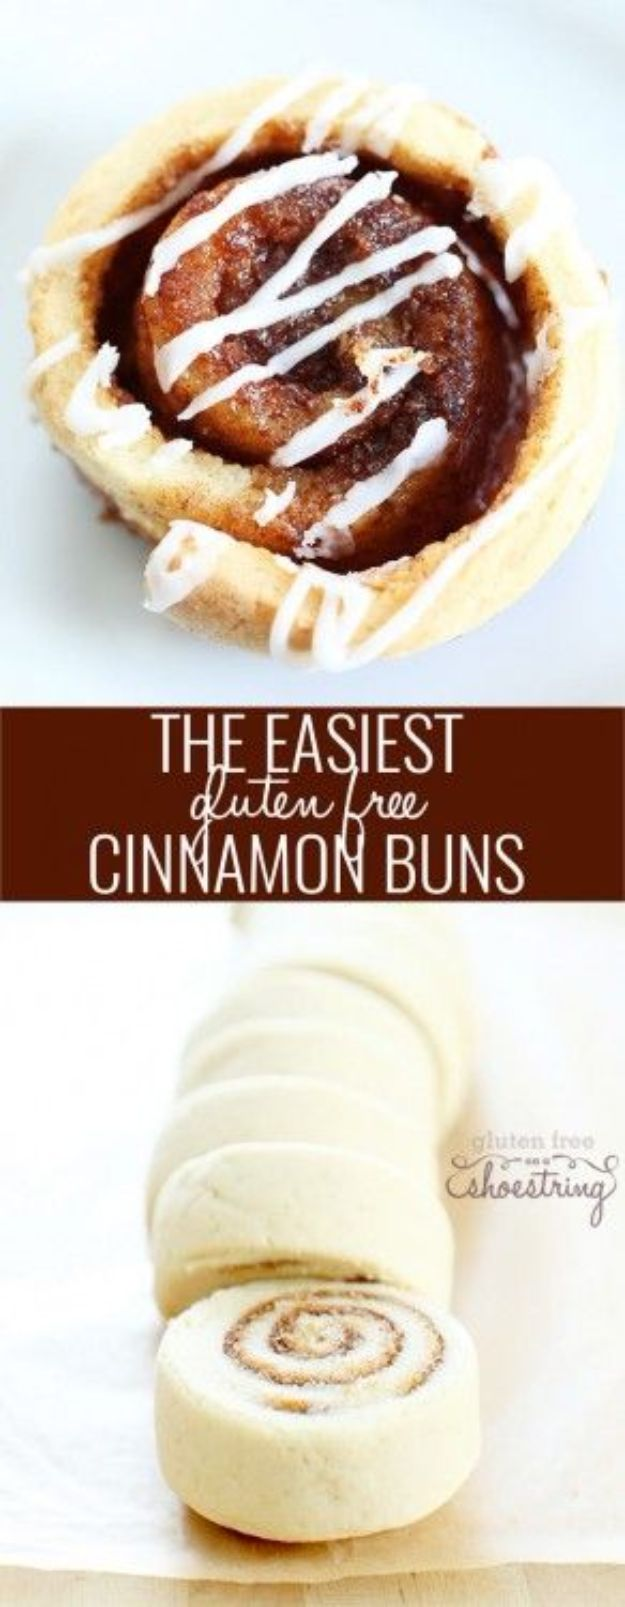 Gluten Free Desserts - Yeast Free, Gluten Free Cinnamon Buns - Easy Recipes and Healthy Recipe Ideas for Cookies, Cake, Pie, Cupcakes, Cheesecake and Ice Cream - Best No Sugar Glutenfree Chocolate, No Bake Dessert, Fruit, Peach, Apple and Banana Dishes - Flourless Christmas, Thanksgiving and Holiday Dishes #glutenfree #desserts #recipes